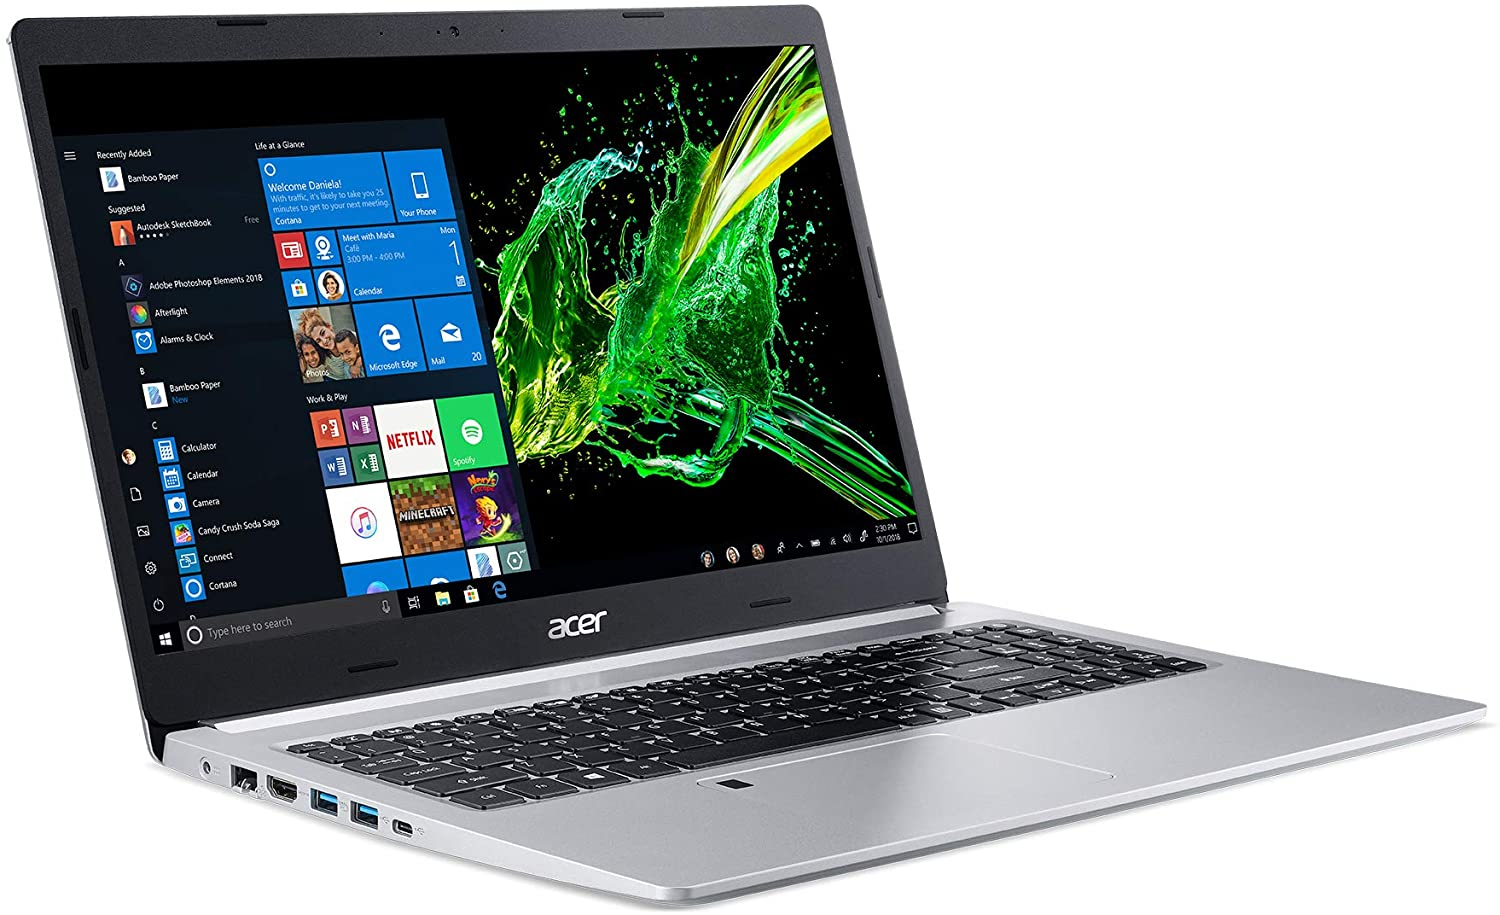 Best Hackintosh Laptops Reviews and Buying Guide 2021